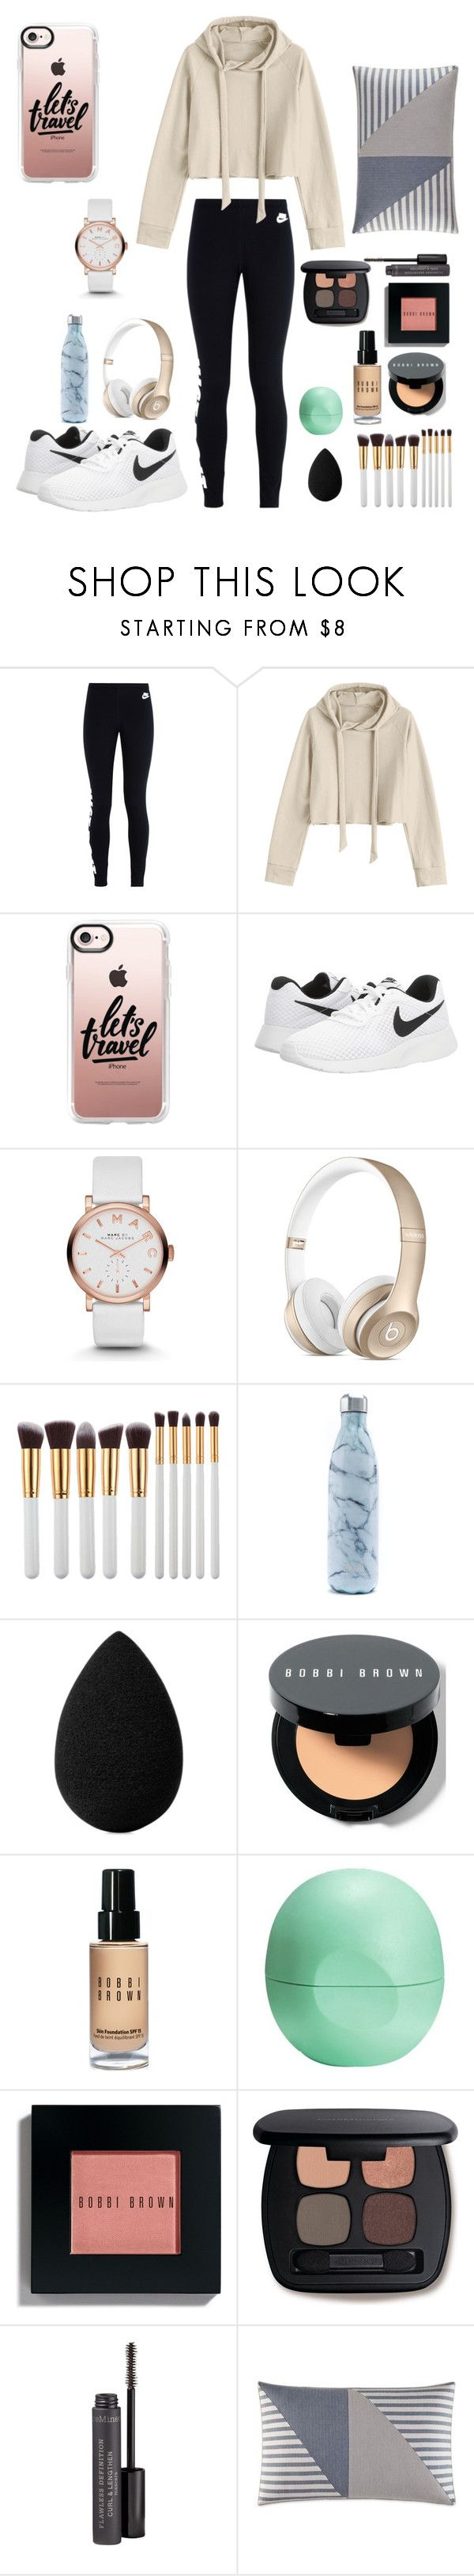 """Long Travels ☉"" by look-in-the-clouds ❤ liked on Polyvore featuring NIKE, Casetify, Marc by Marc Jacobs, My Makeup Brush Set, S'well, beautyblender, Bobbi Brown Cosmetics, Eos, Bare Escentuals and Nautica"